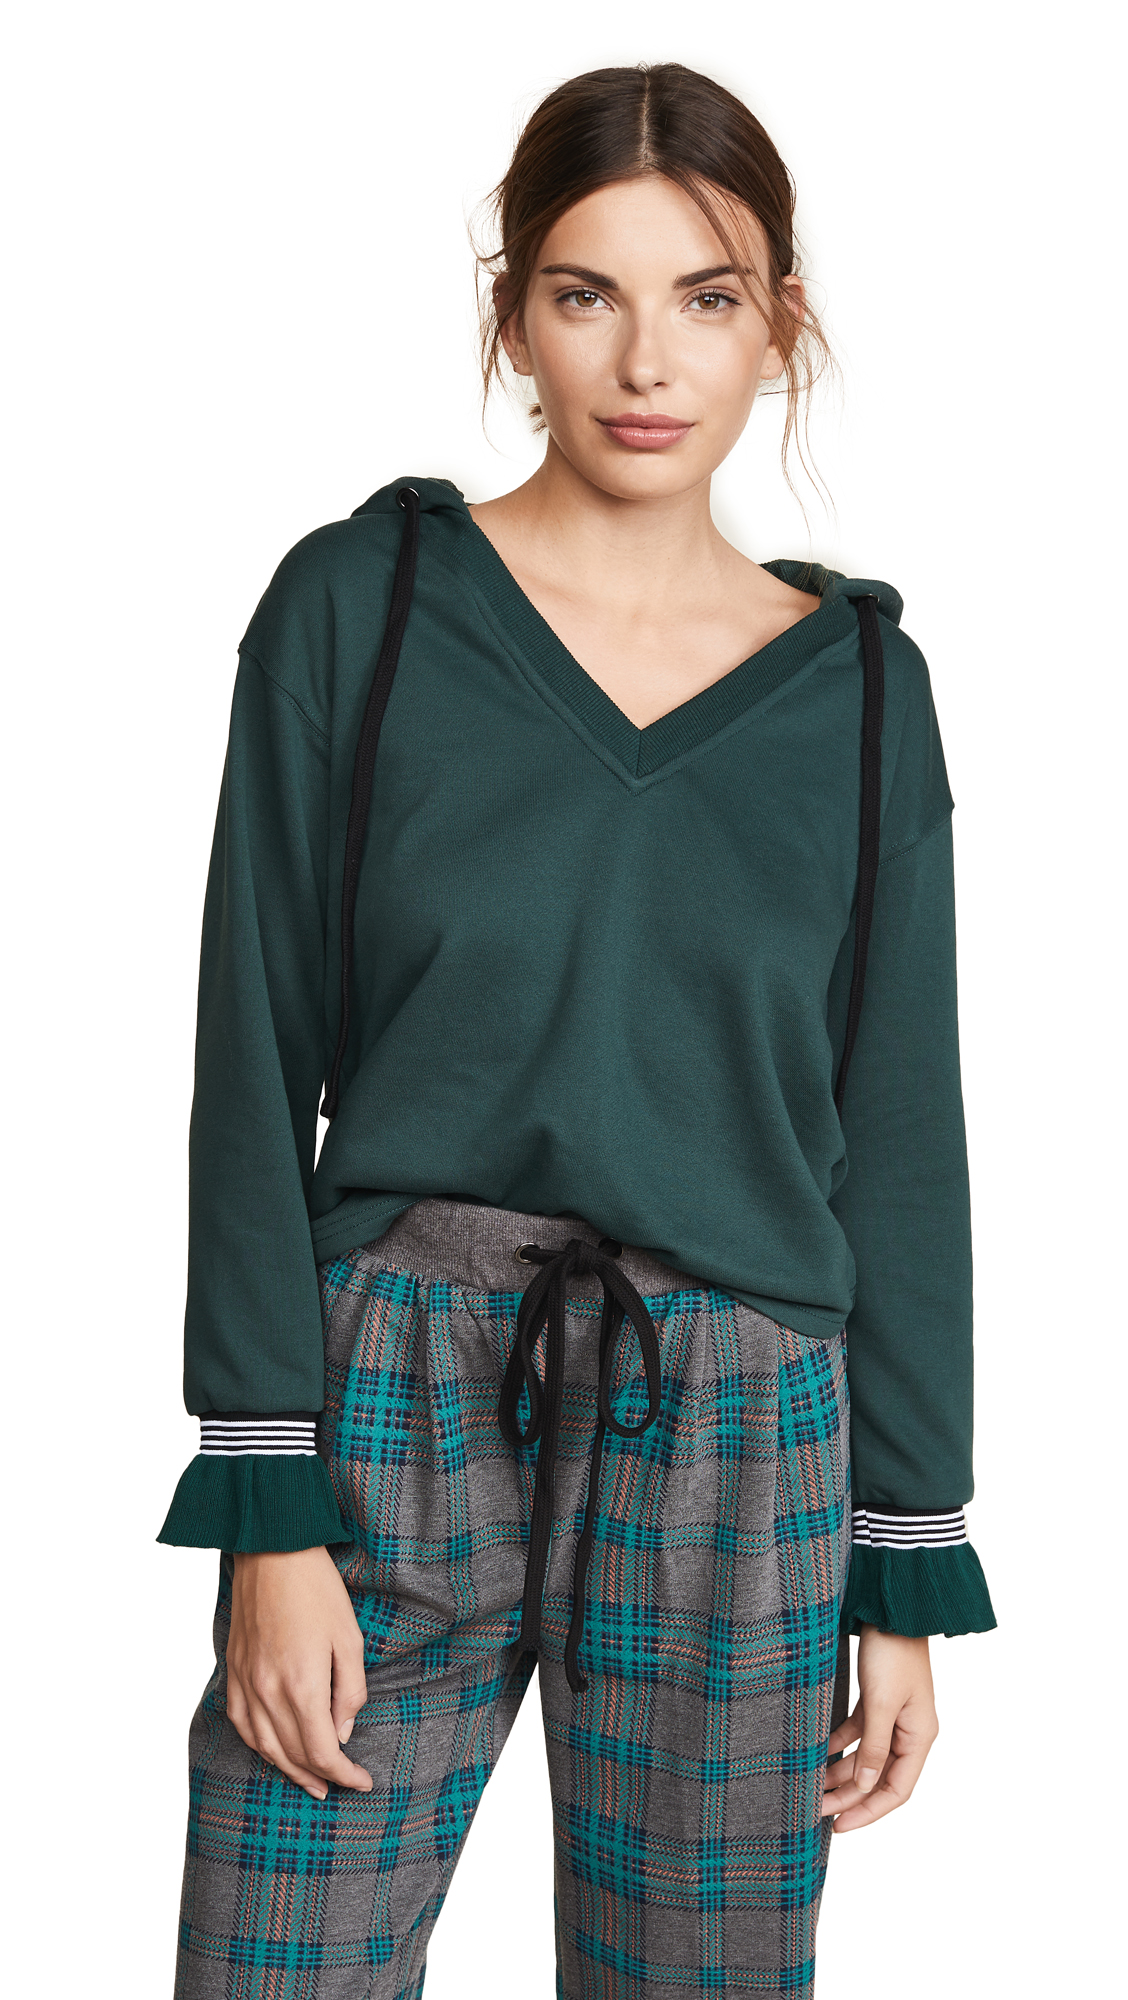 J.O.A. Pullover Hoodie Sweatshirt In Forest